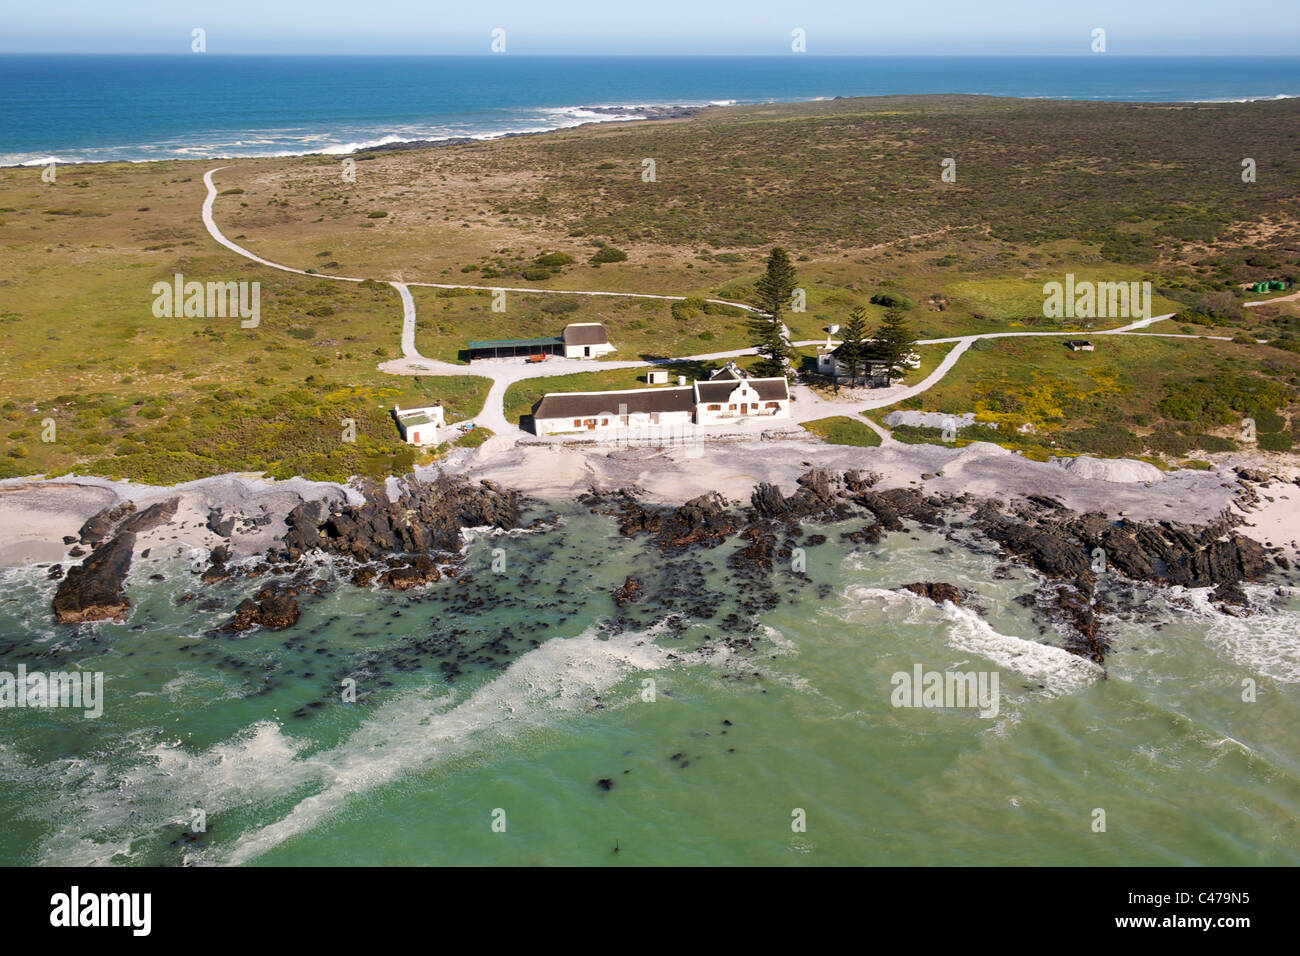 Aerial view of the old farmhouse at Bokbaai on the west coast north of Cape Town in South Africa. - Stock Image